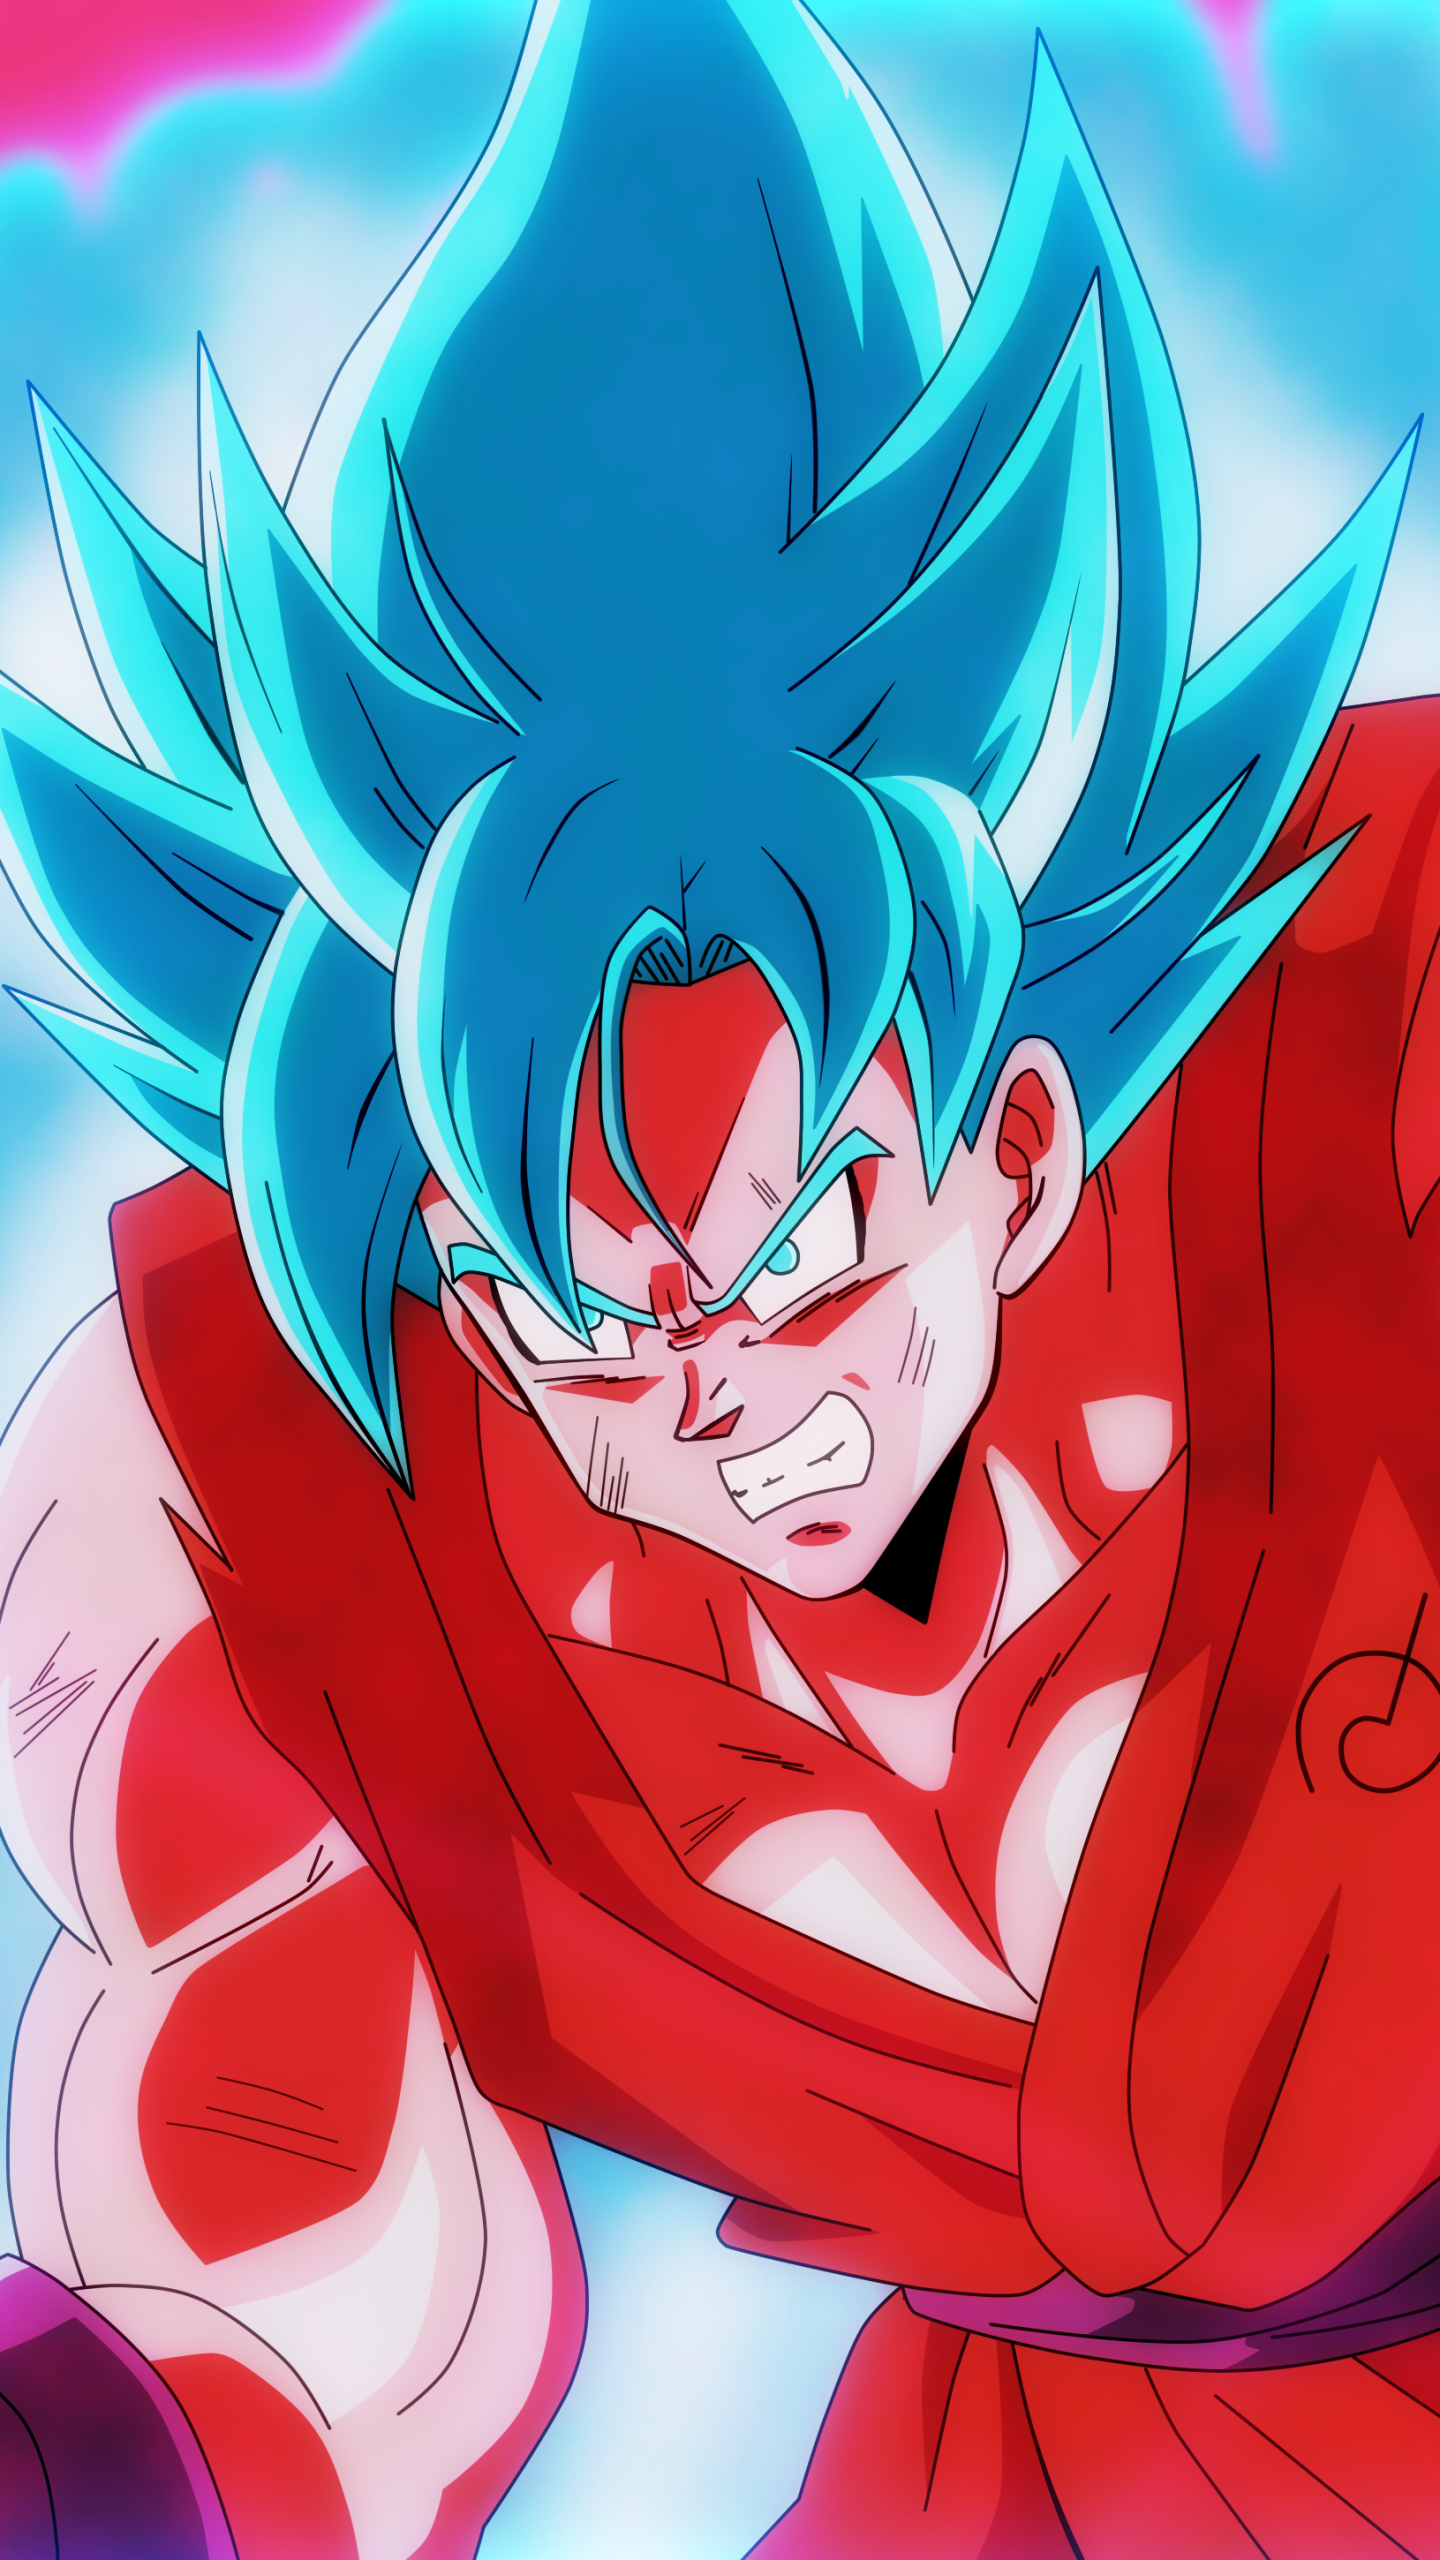 375 Goku Apple Iphone 7 Plus 1080x1920 Wallpapers Mobile Abyss